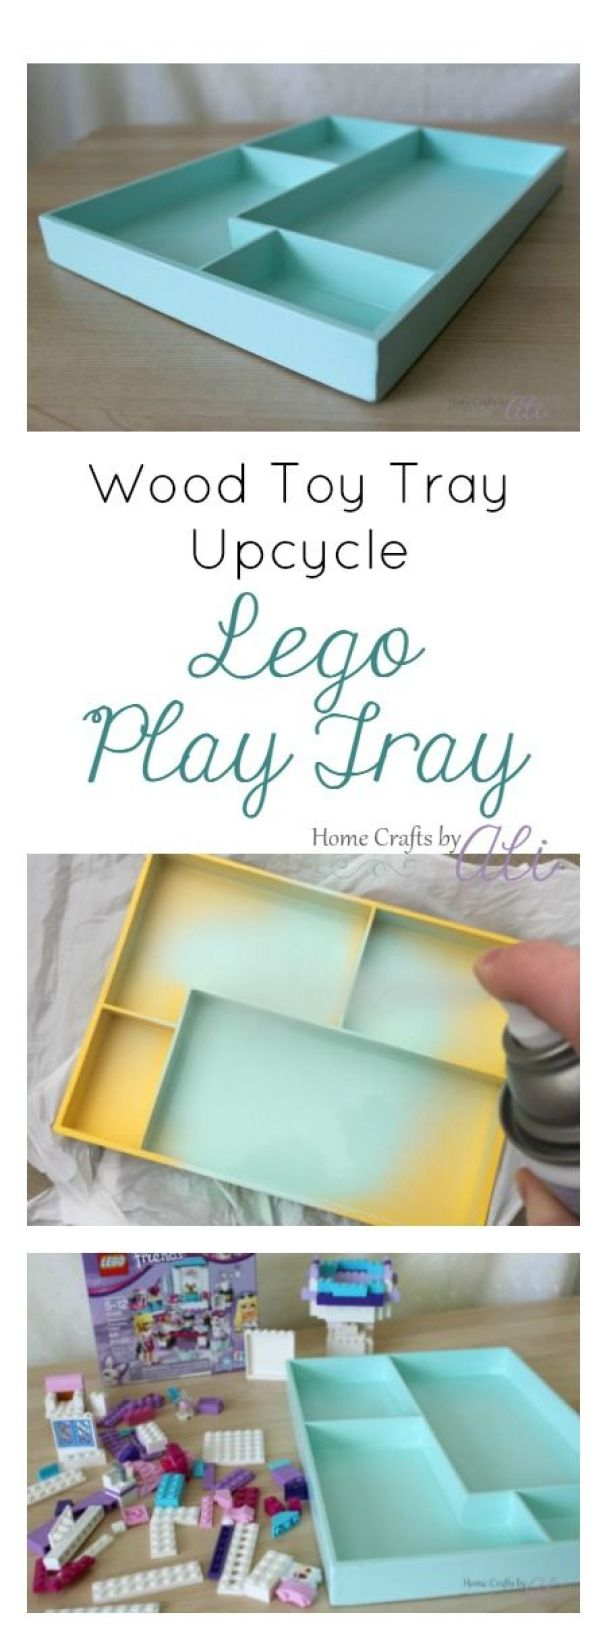 Wood Toy Tray Upcycle Into Lego Play Tray - Follow this simple 3 step tutorial to makeover a tray into a cute Lego play area.: